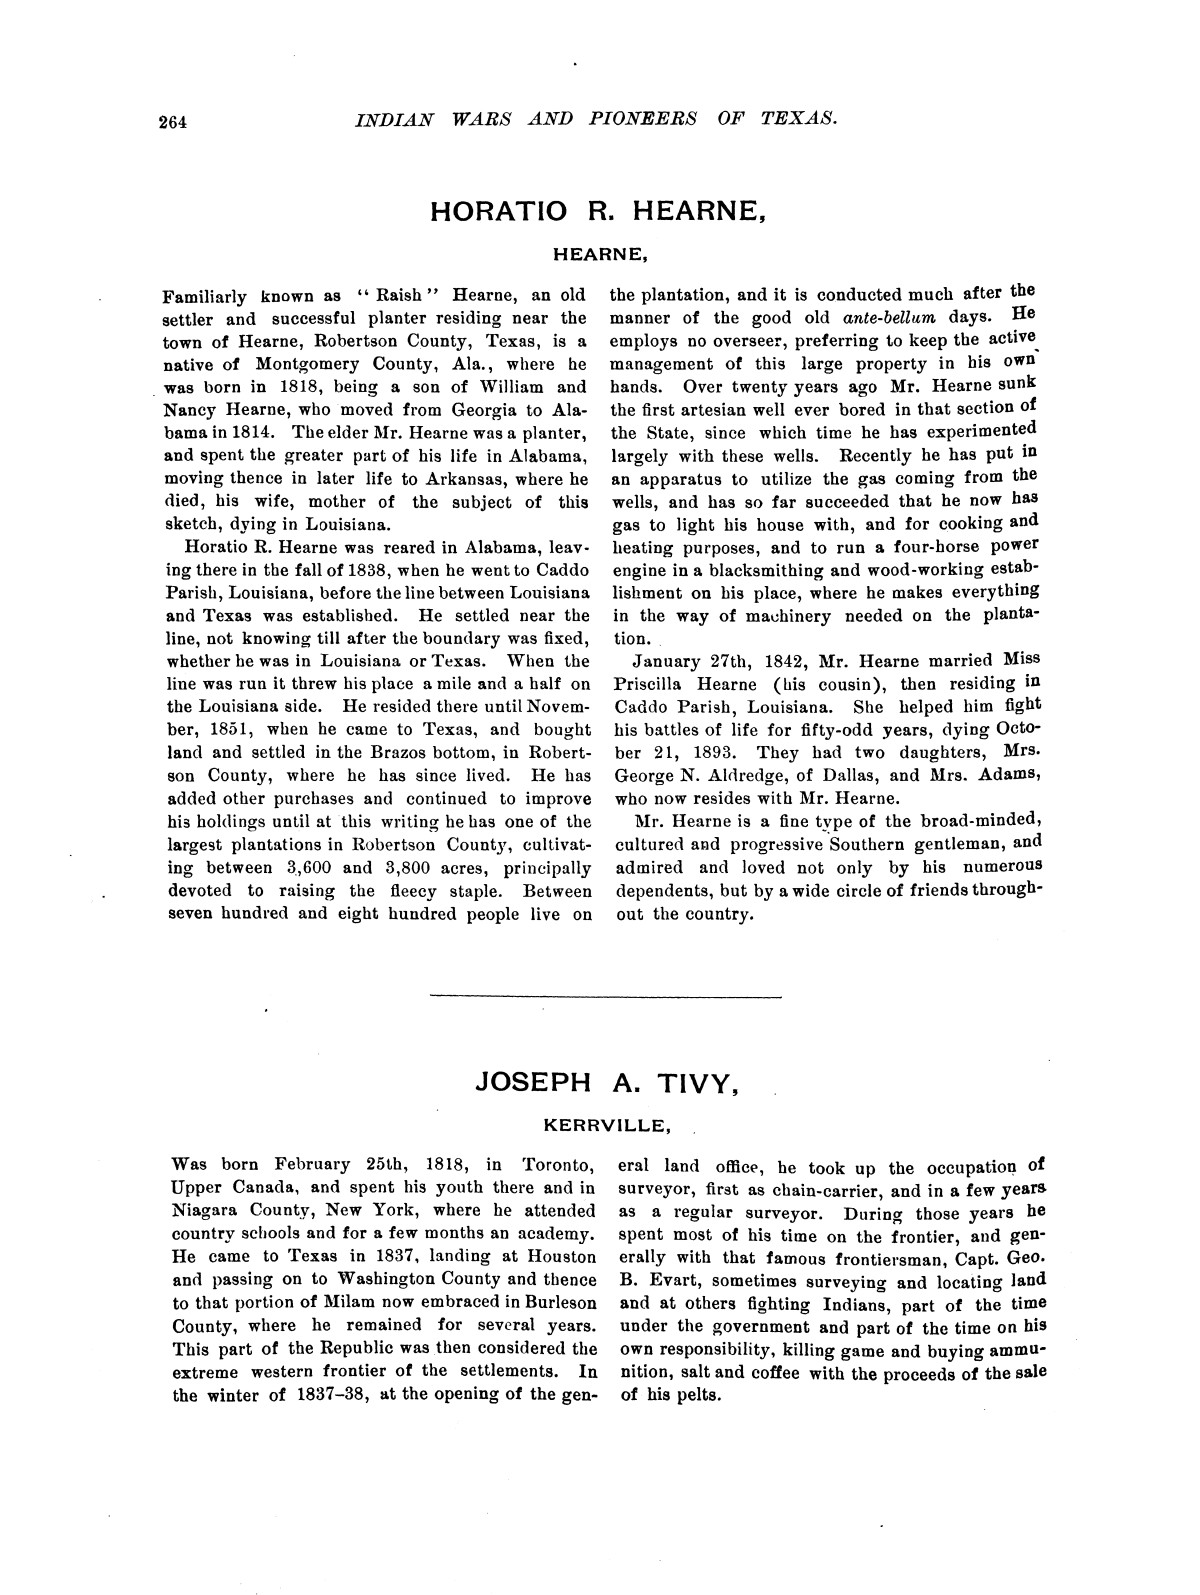 Indian wars and pioneers of Texas / by John Henry Brown.                                                                                                      [Sequence #]: 305 of 894